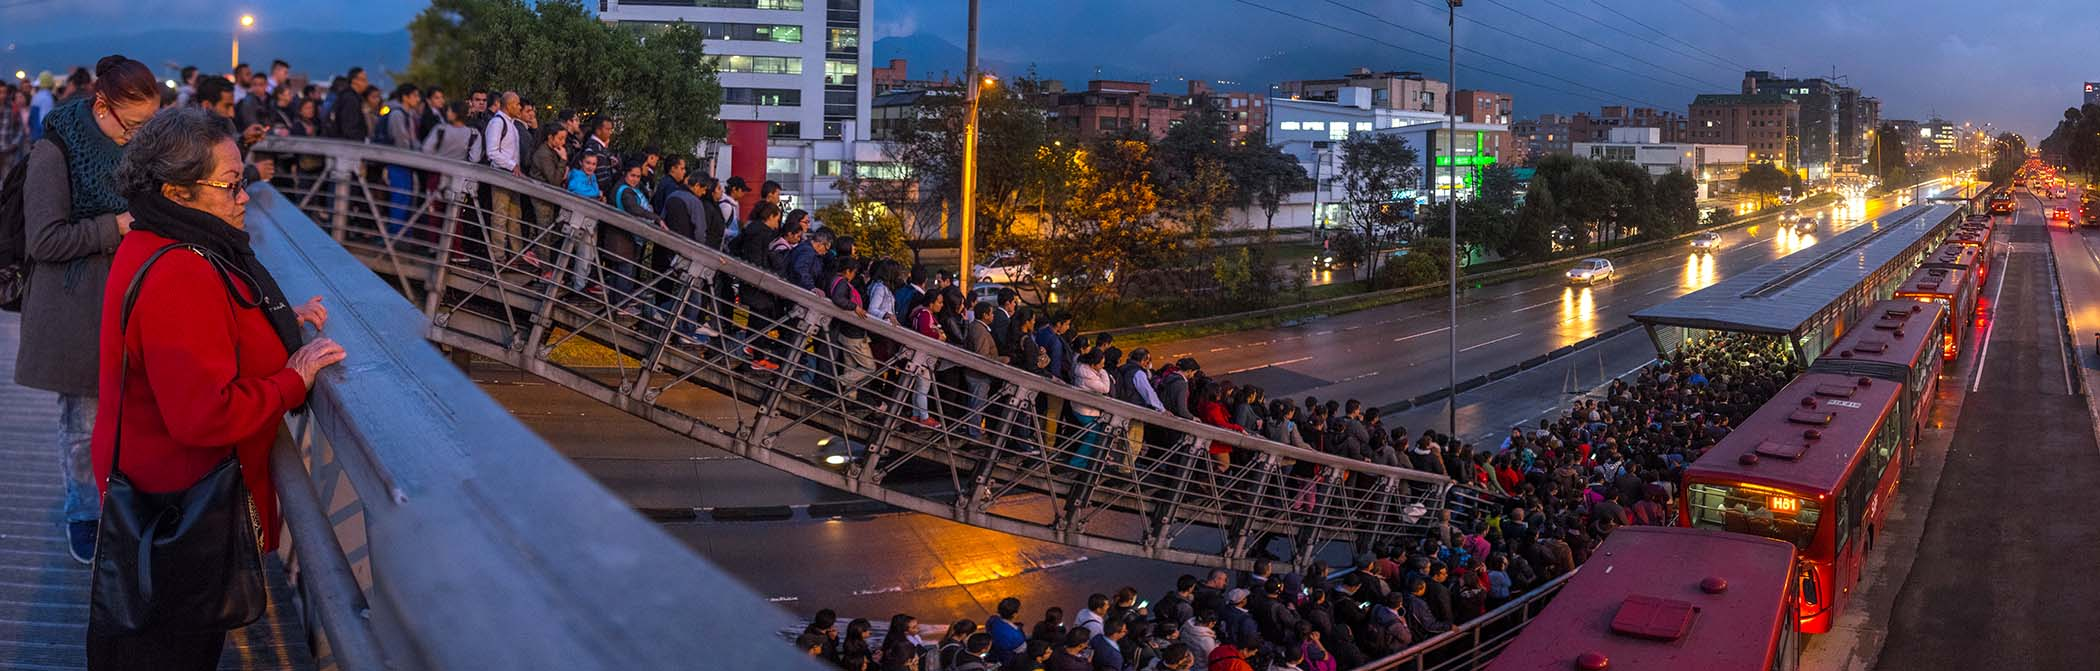 According to Transit App Moovit, one in every 5 passengers on Bogota's public transit system transfers twice on a single journey. This picture in 2017 captures passengers as they wait to board one of Bogota's TransMilenio's BRT service. (Image: Flickr)